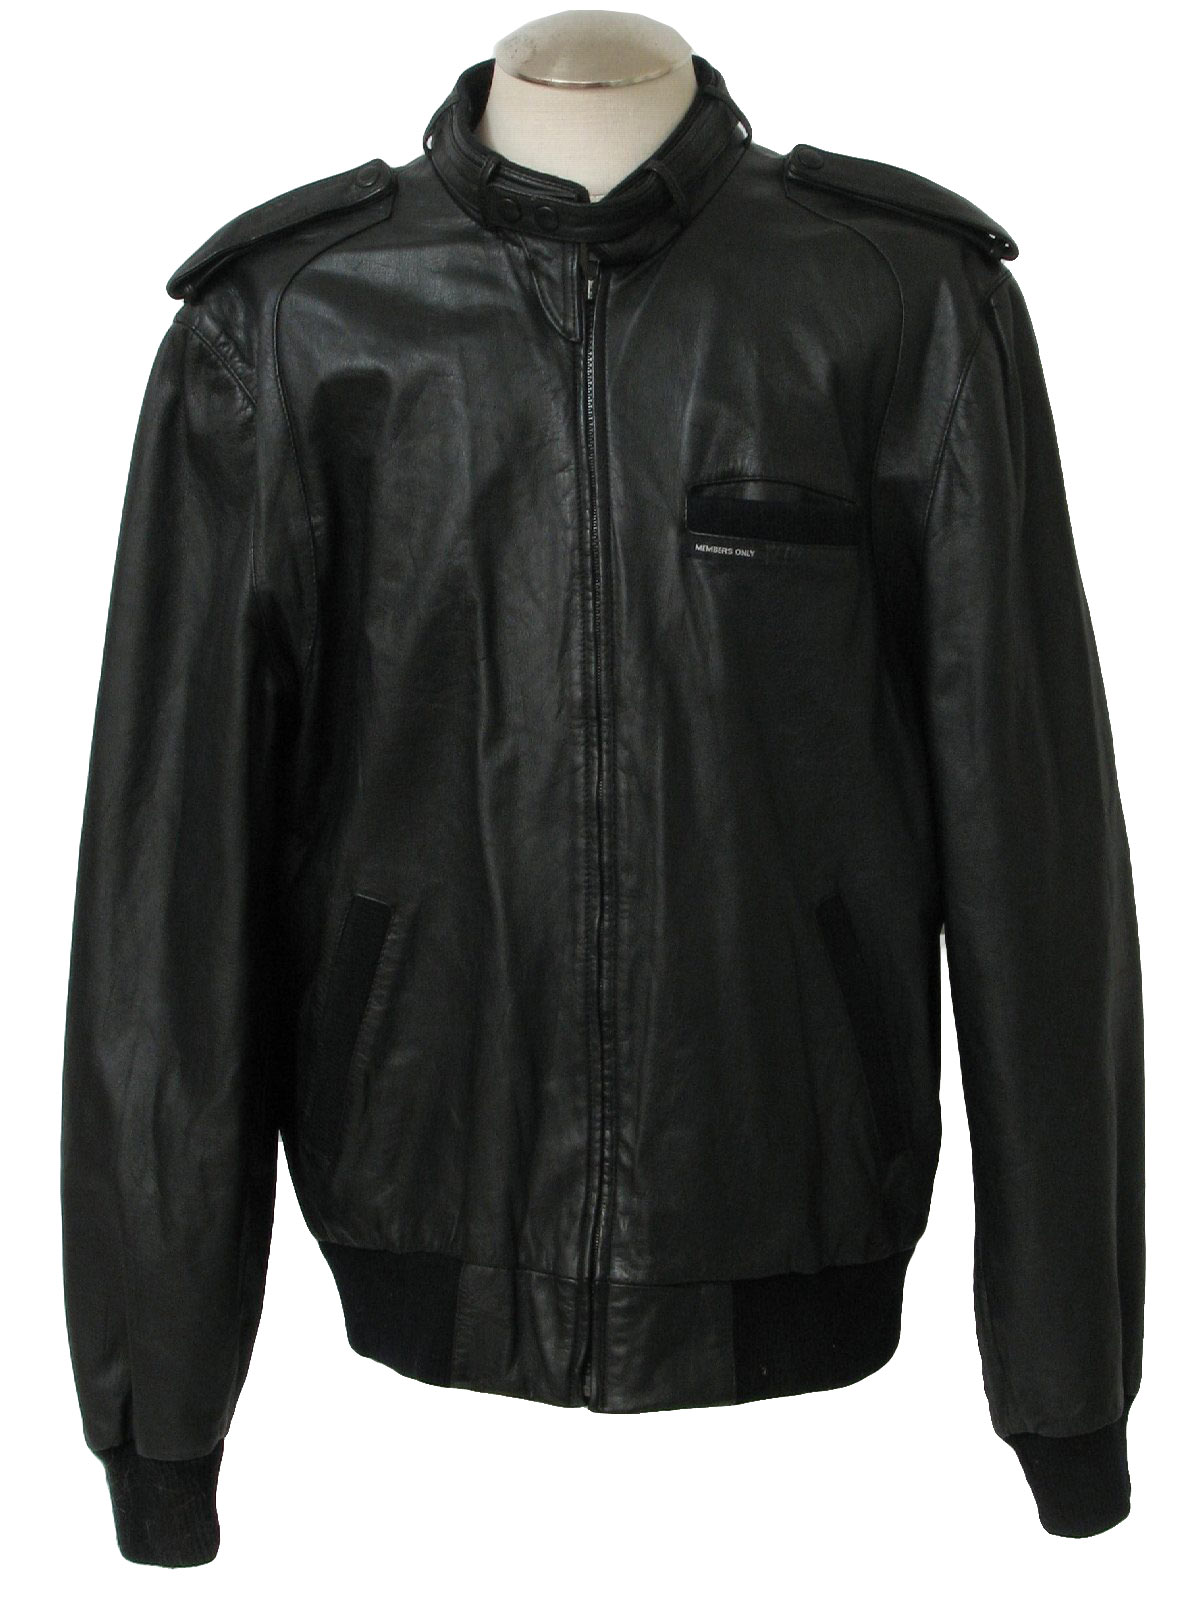 80s -Members Only- Mens black leather members only jacket with zip